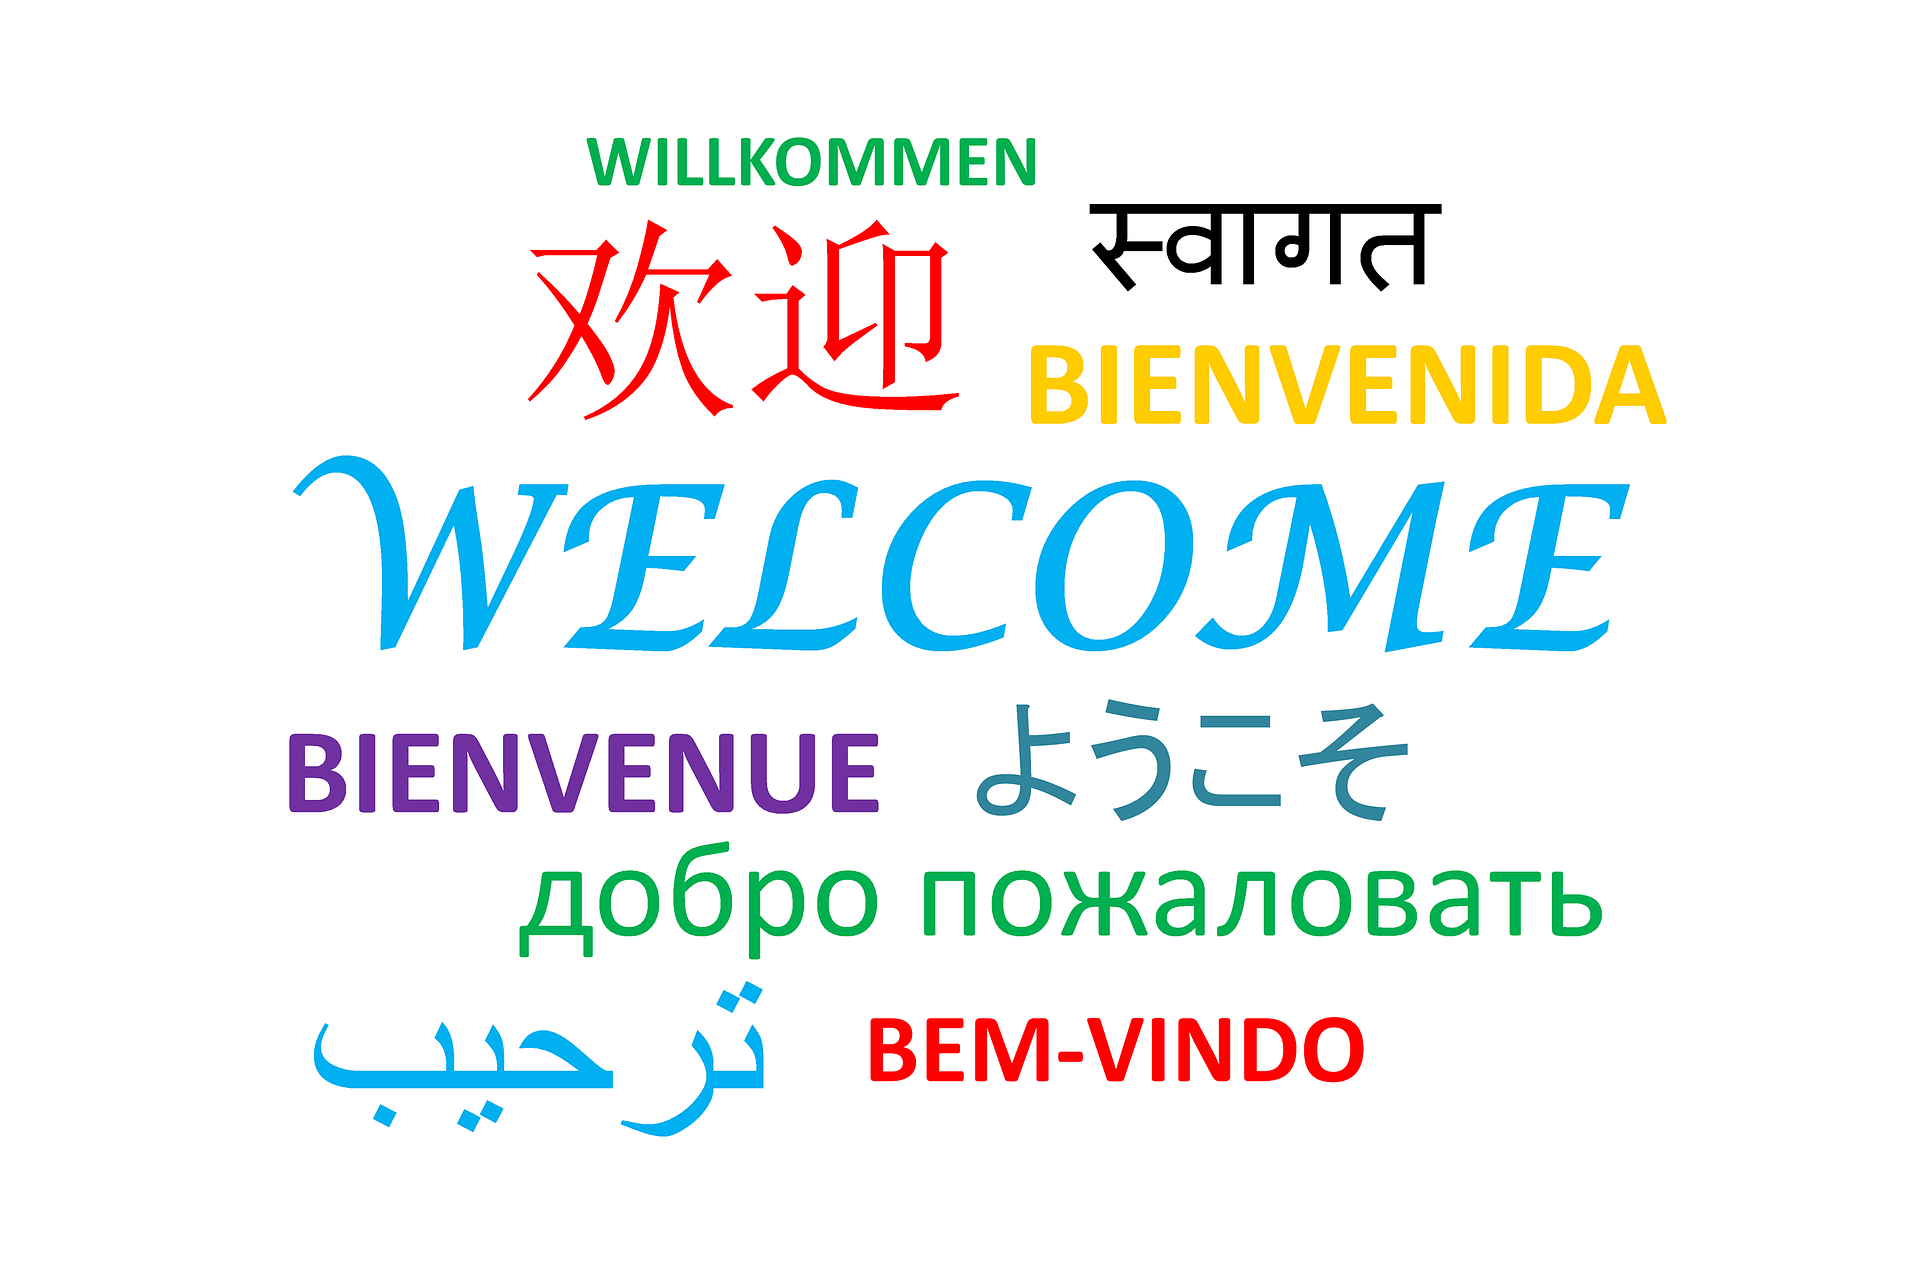 Welcome in diverse languages